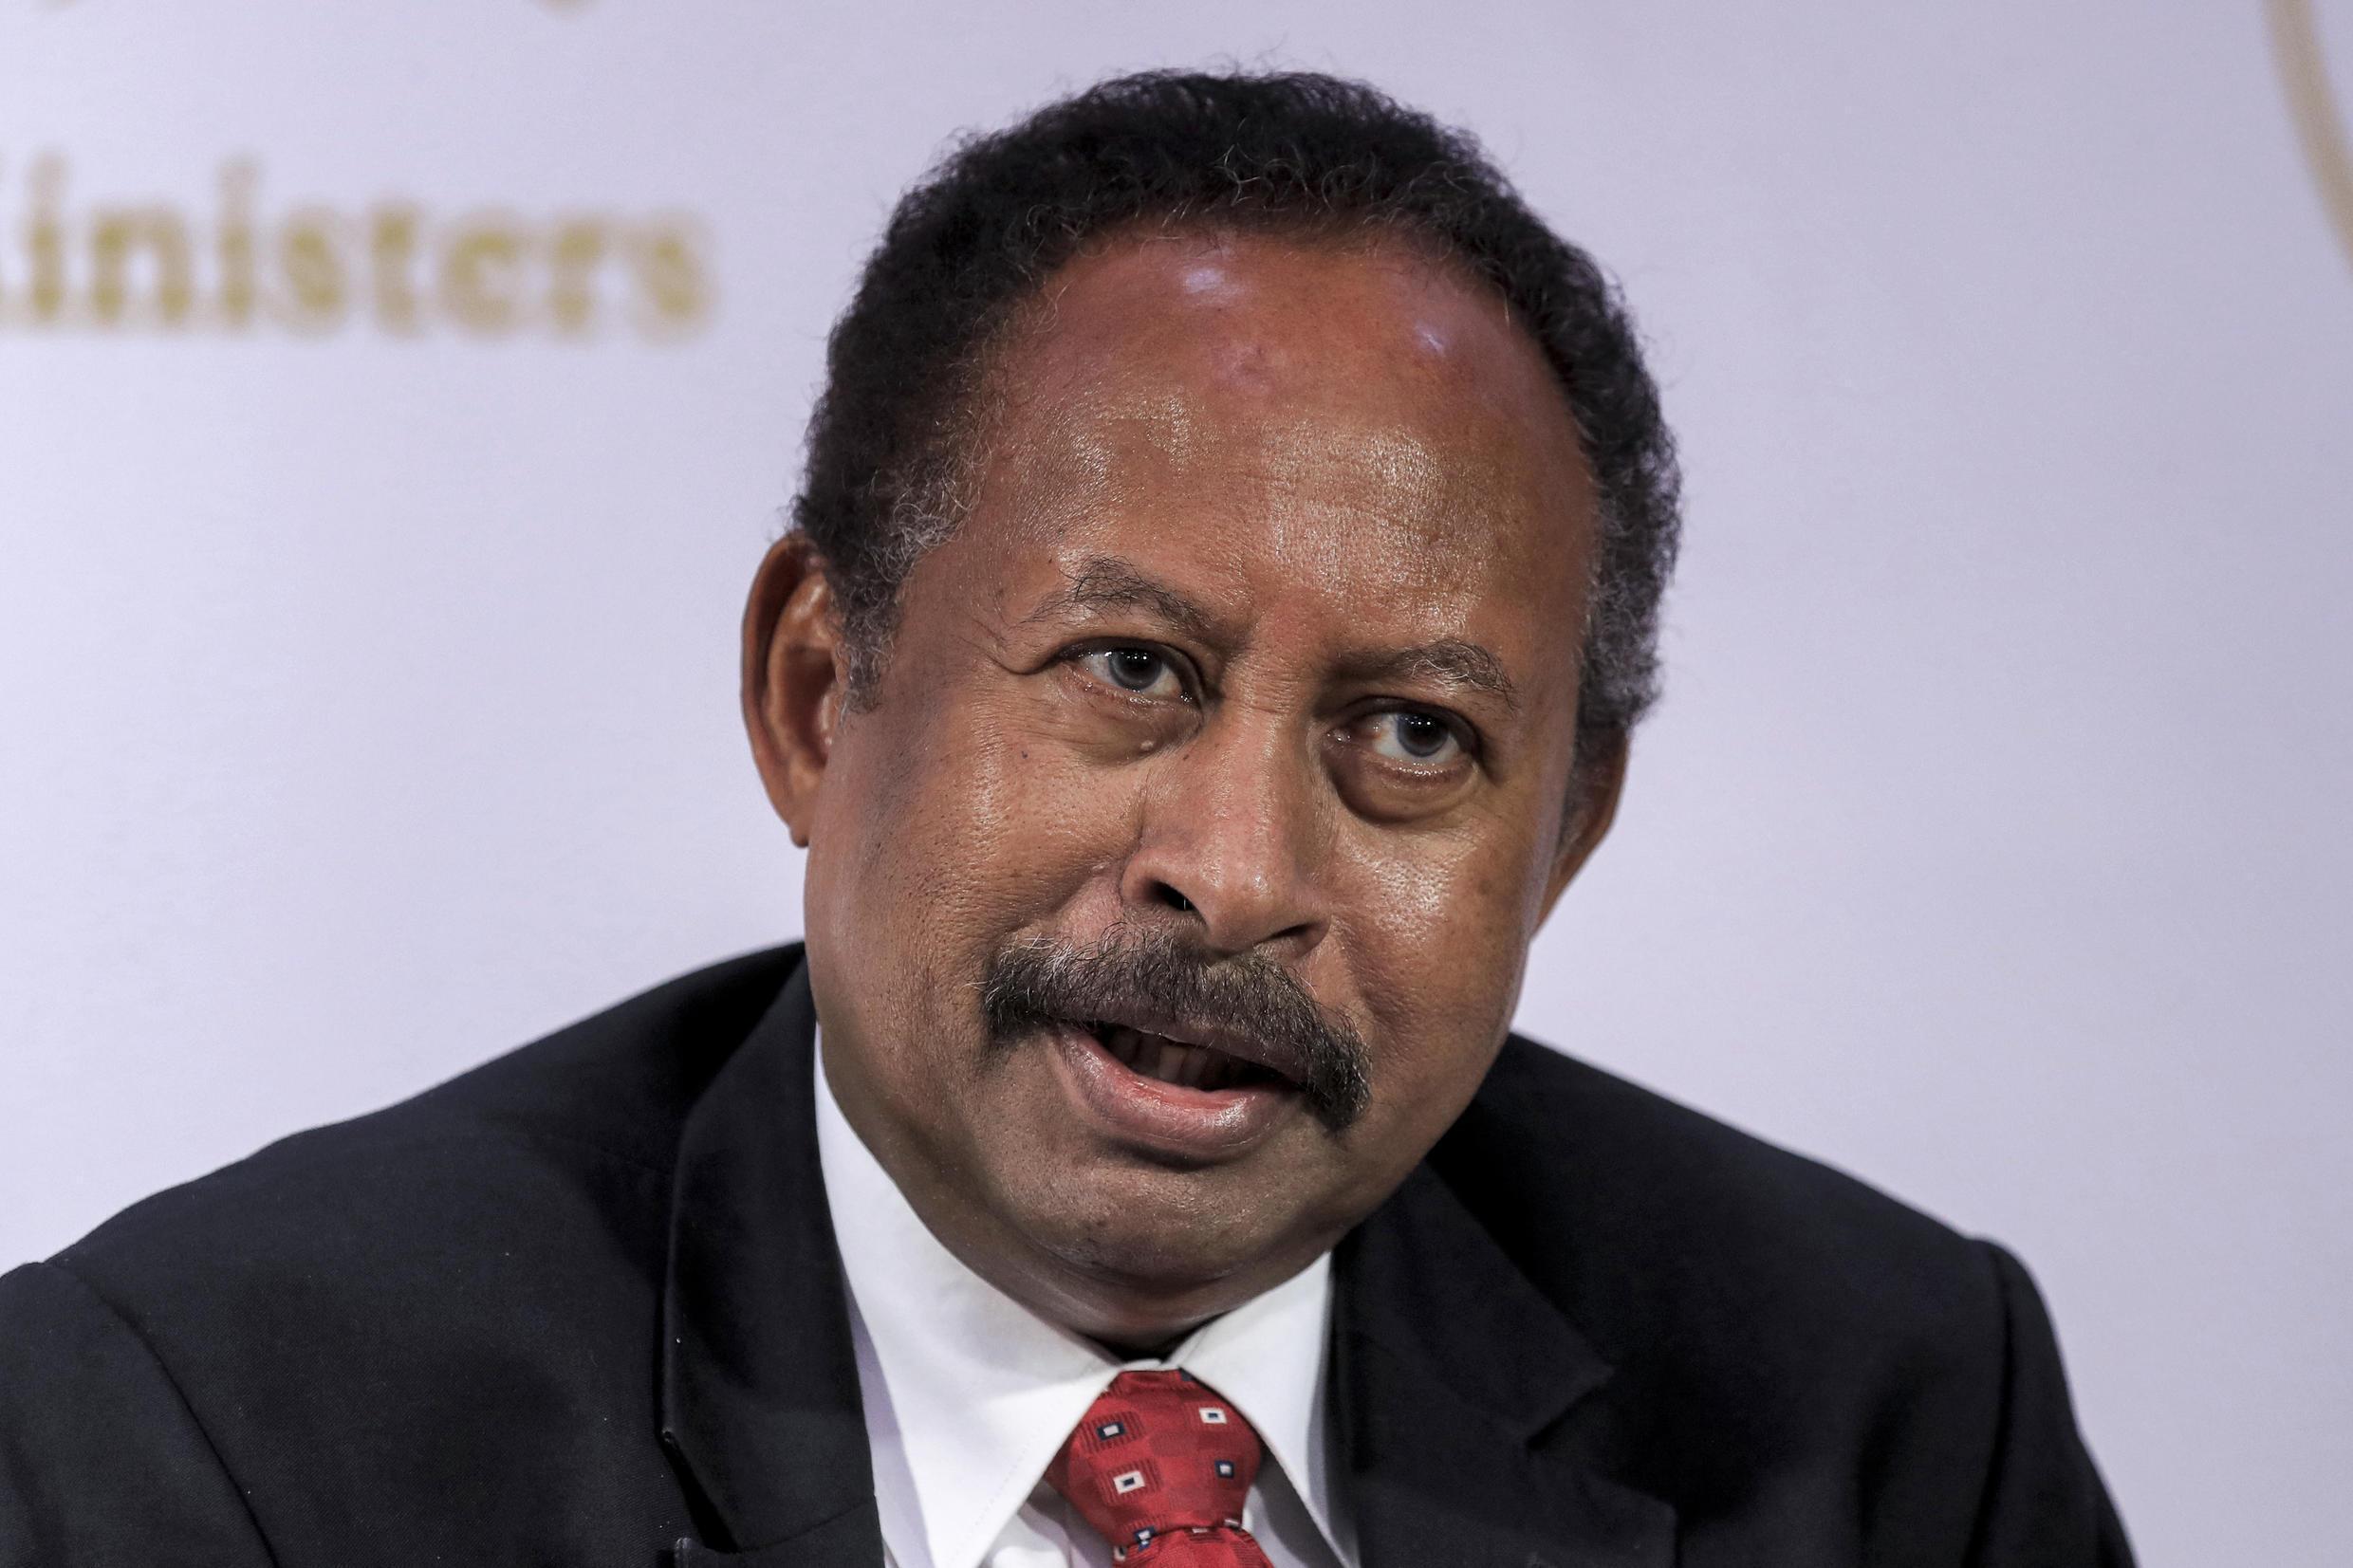 Sudan's Prime Minister Abdalla Hamdok hopes his country can wipe out its $60 billion foreign debt by securing investment and debt relief at next week's Paris conference